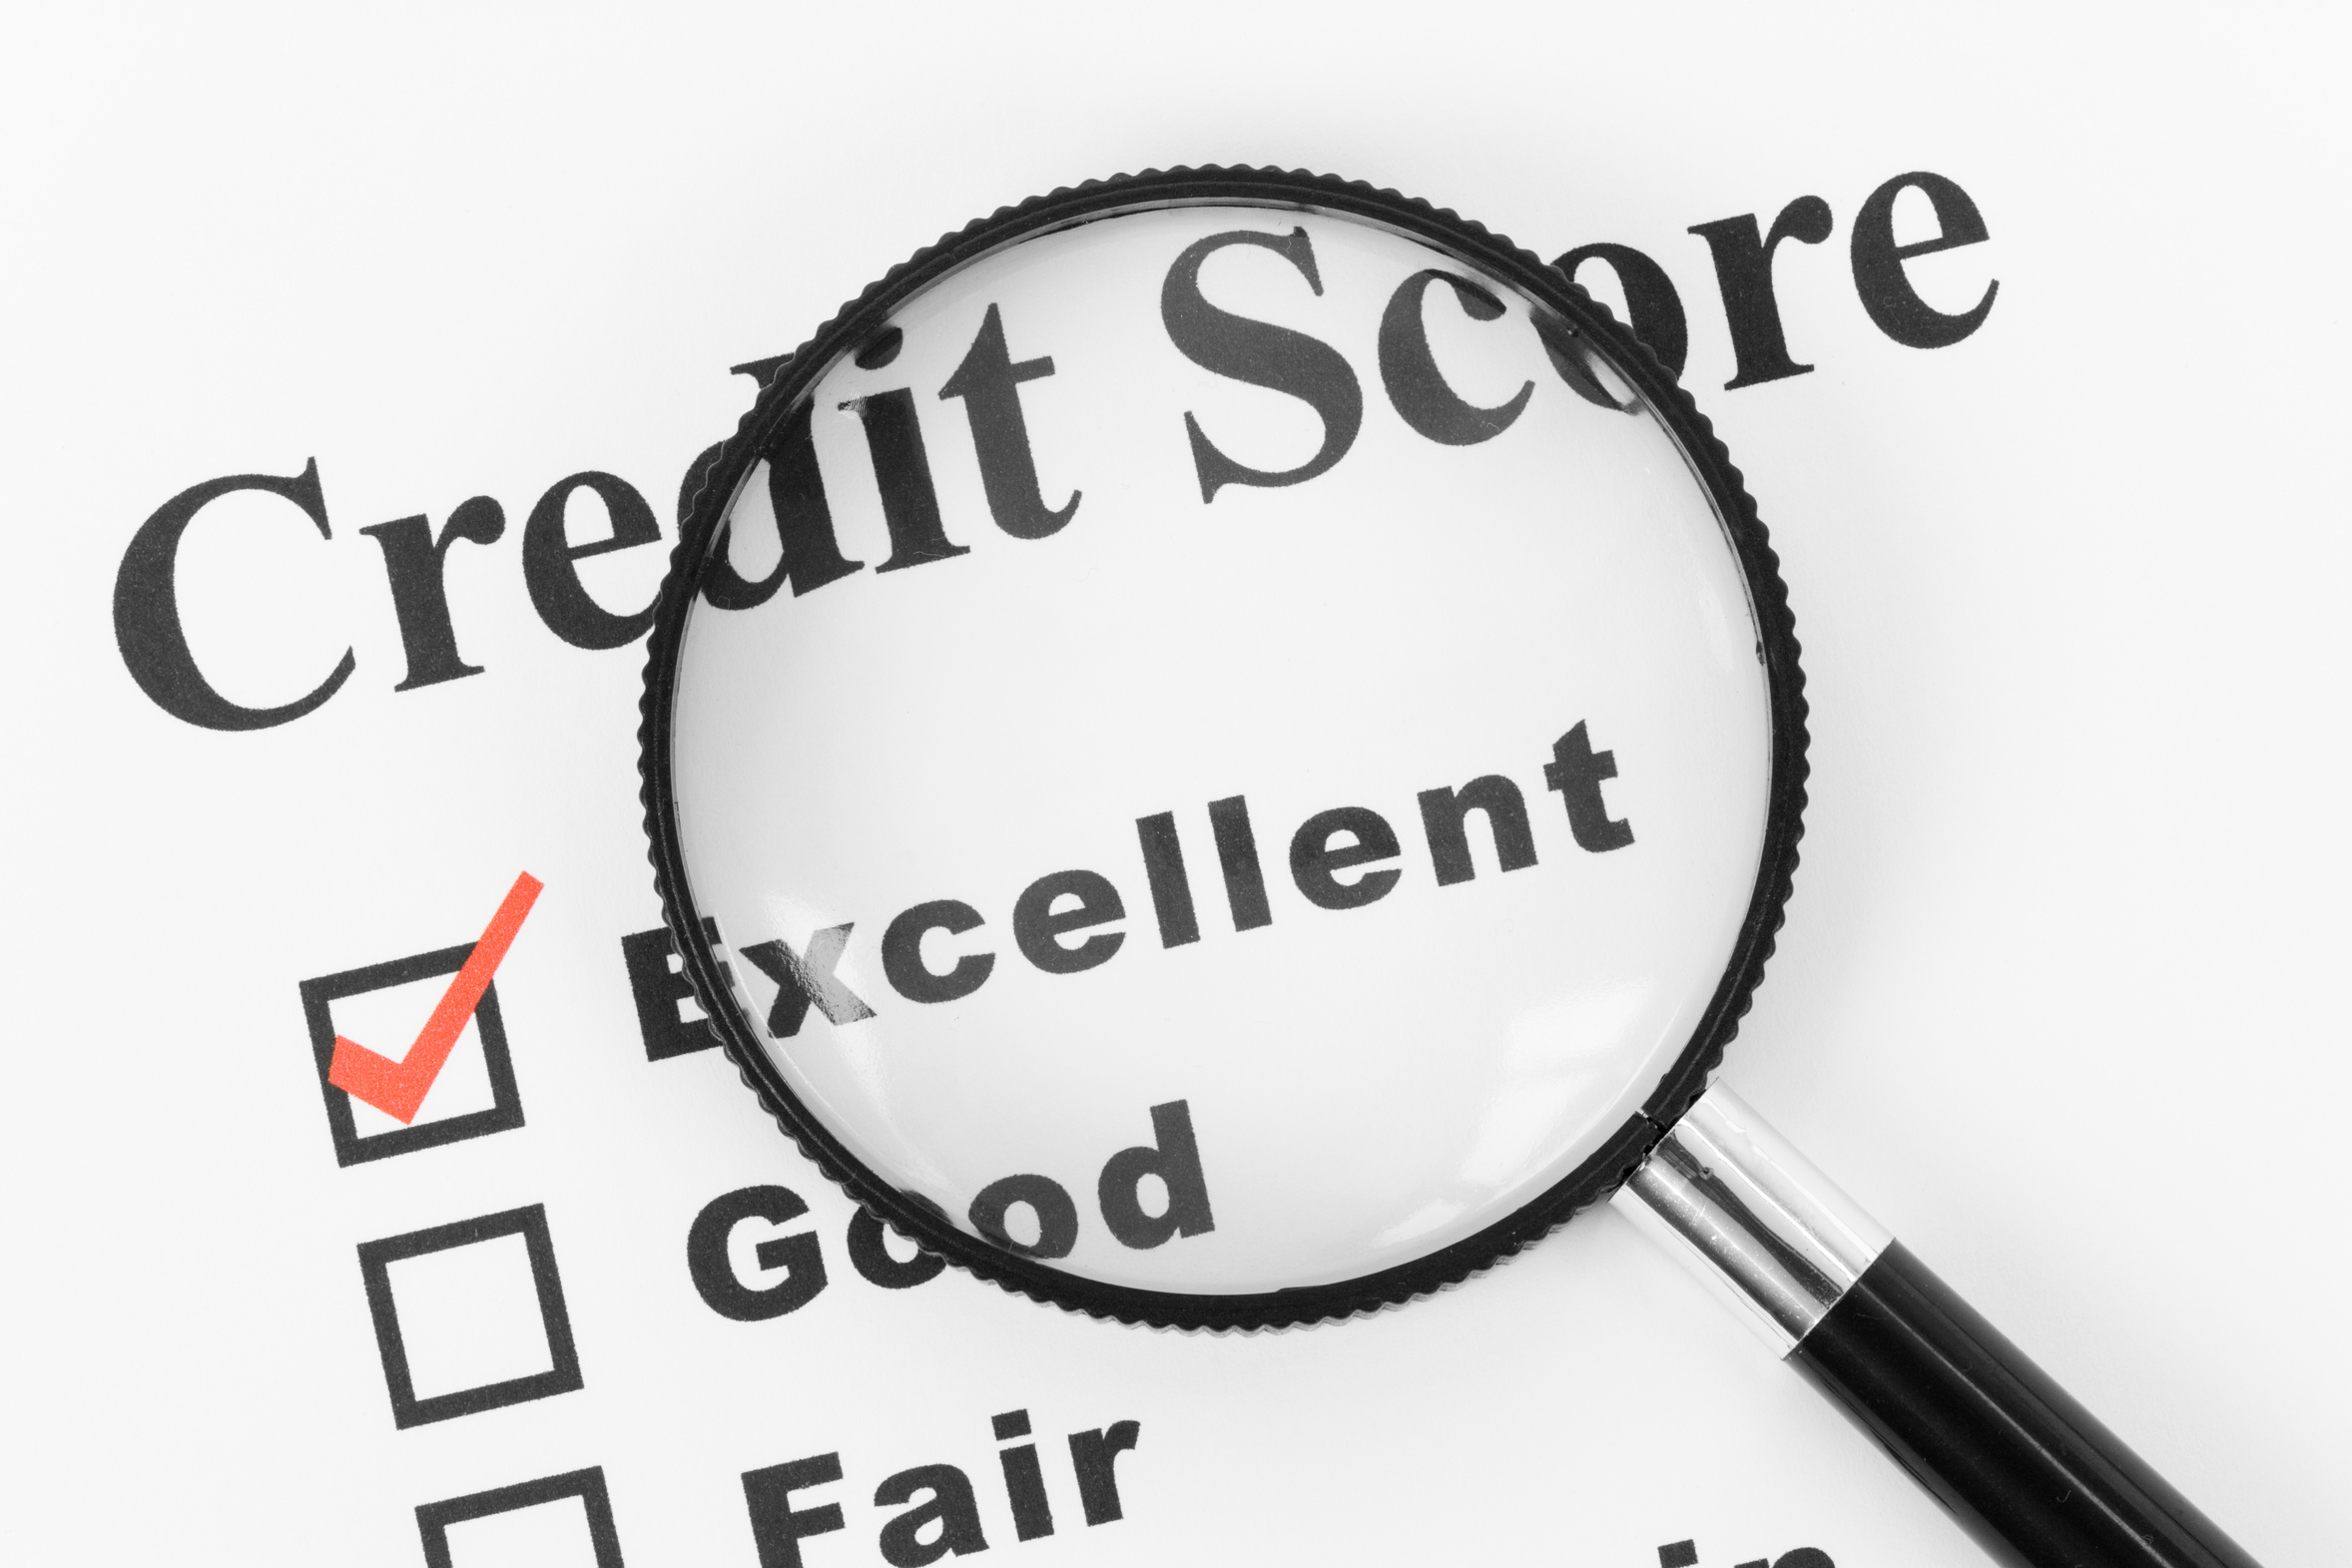 Monday's Audio Podcast – Let's Talk About Credit Scores